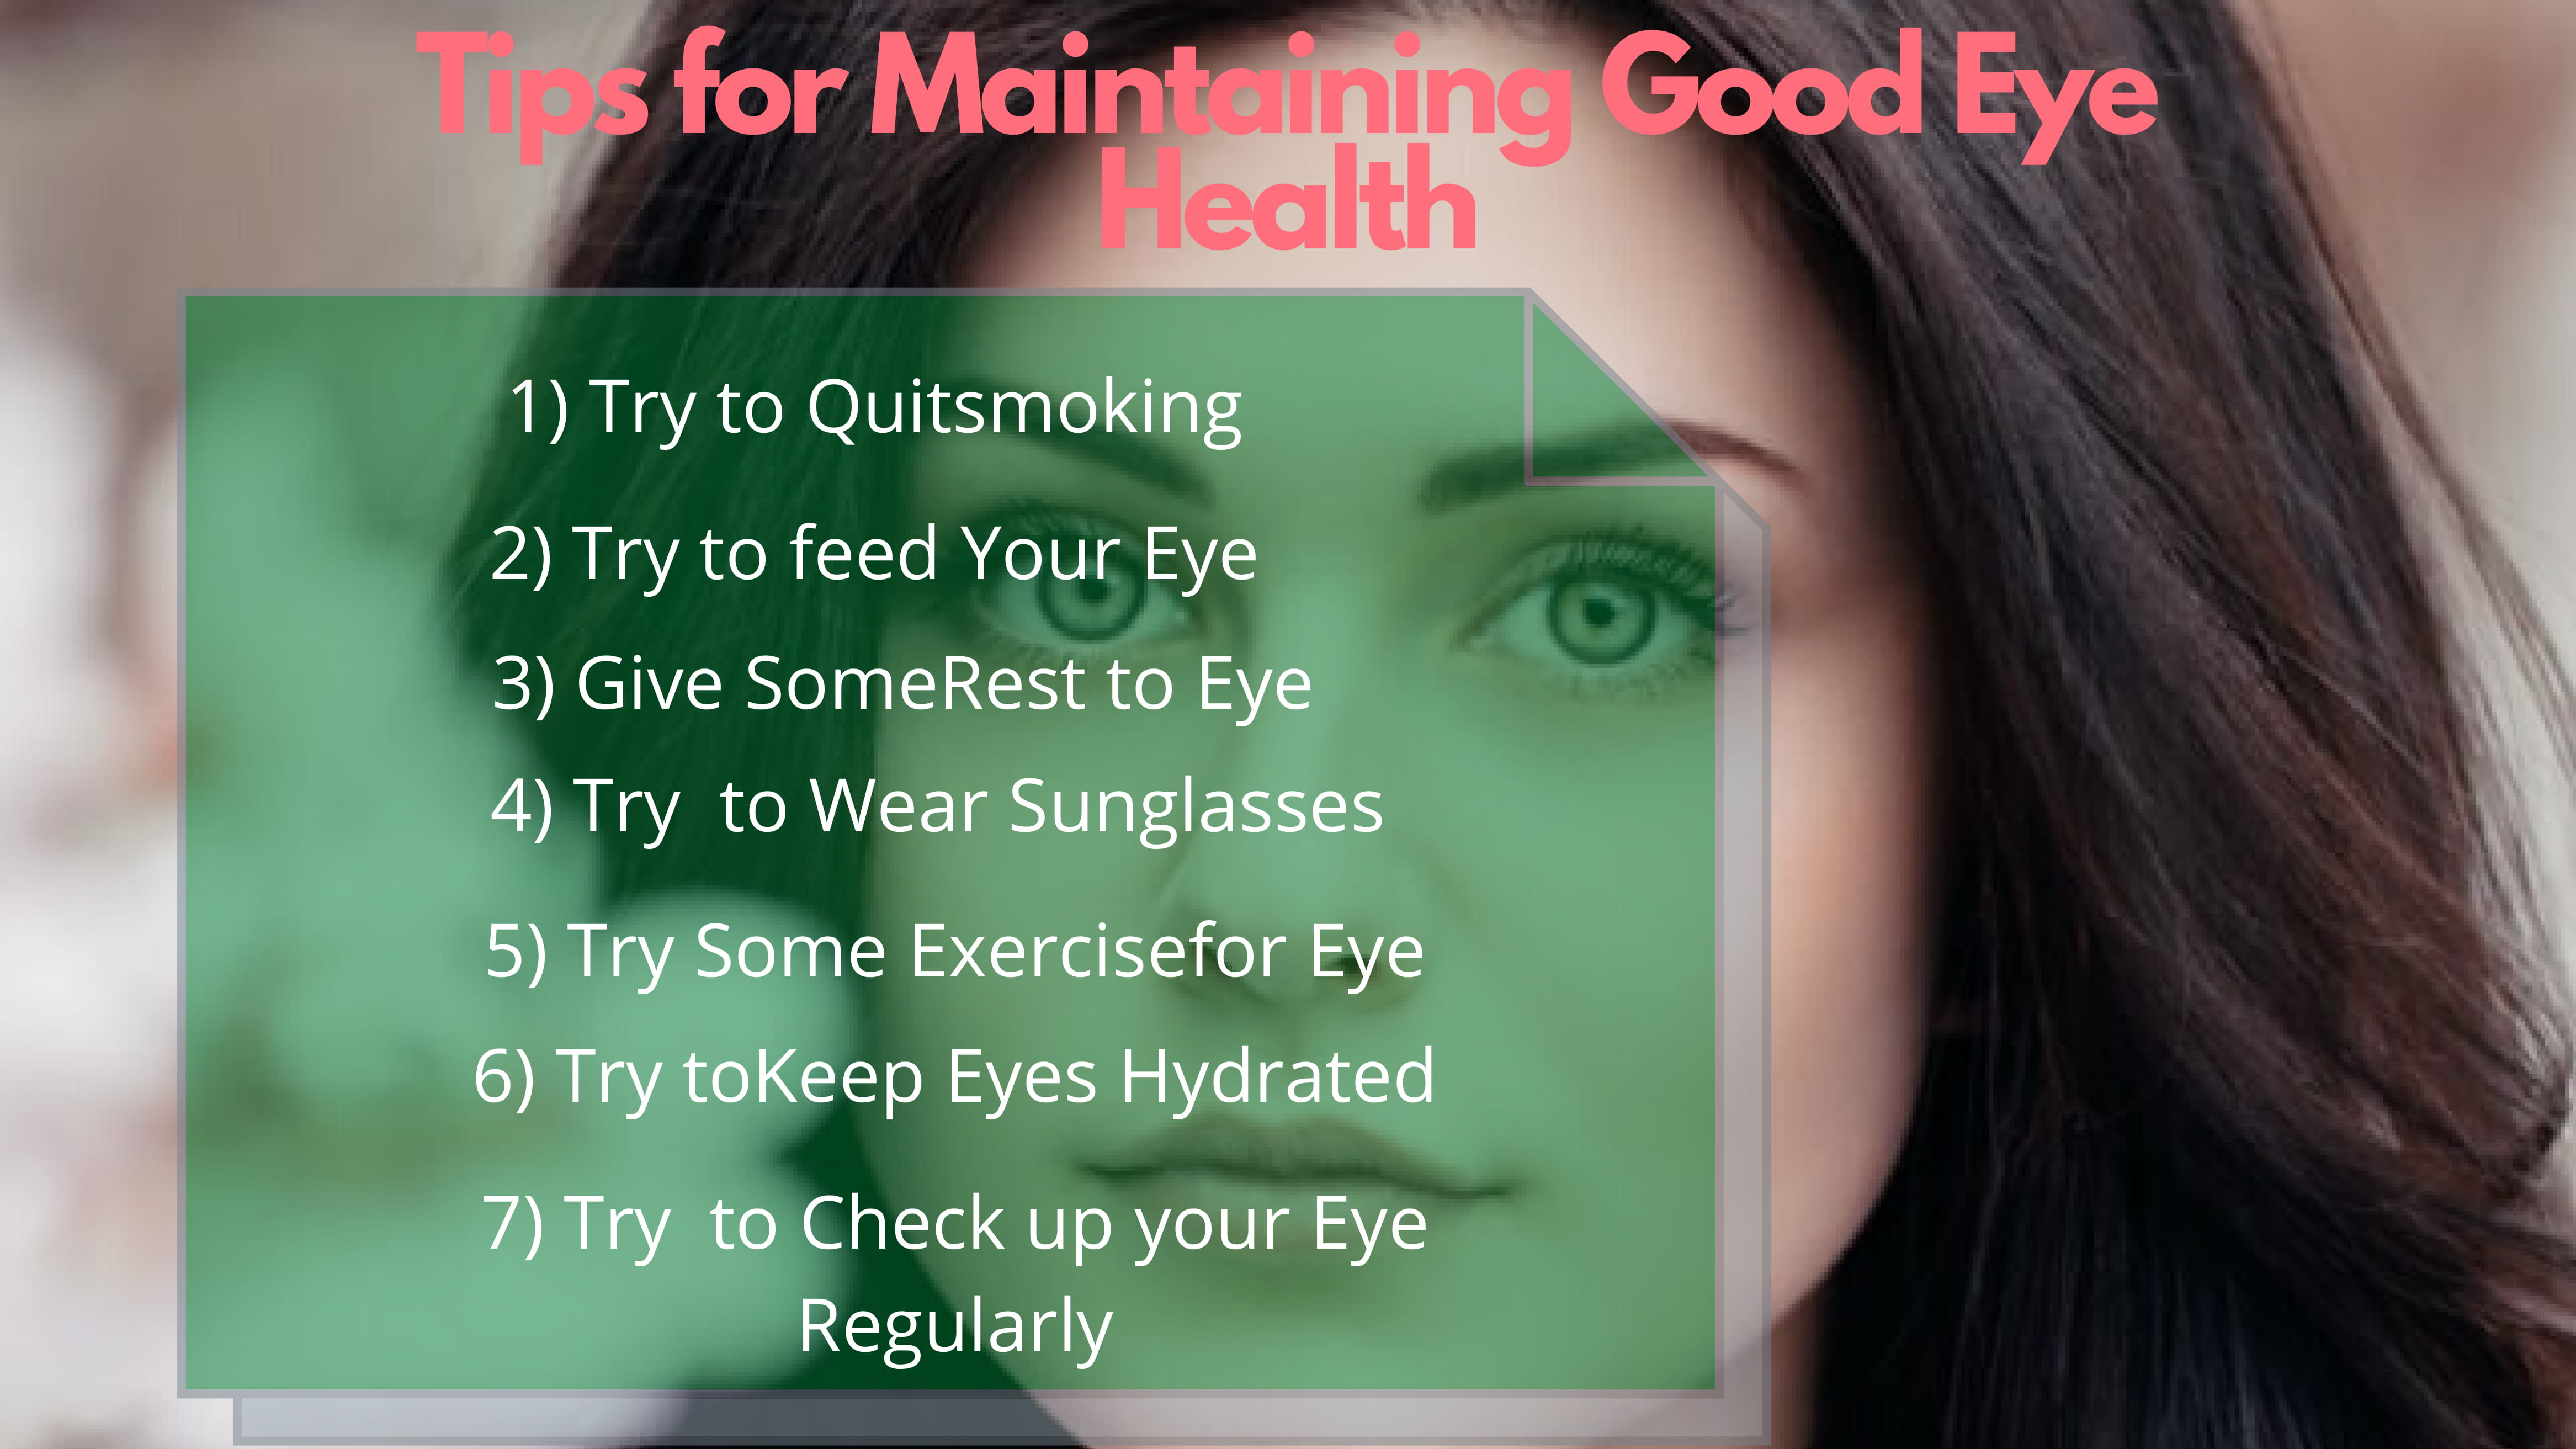 Tips for Maintaining Good Eye Health